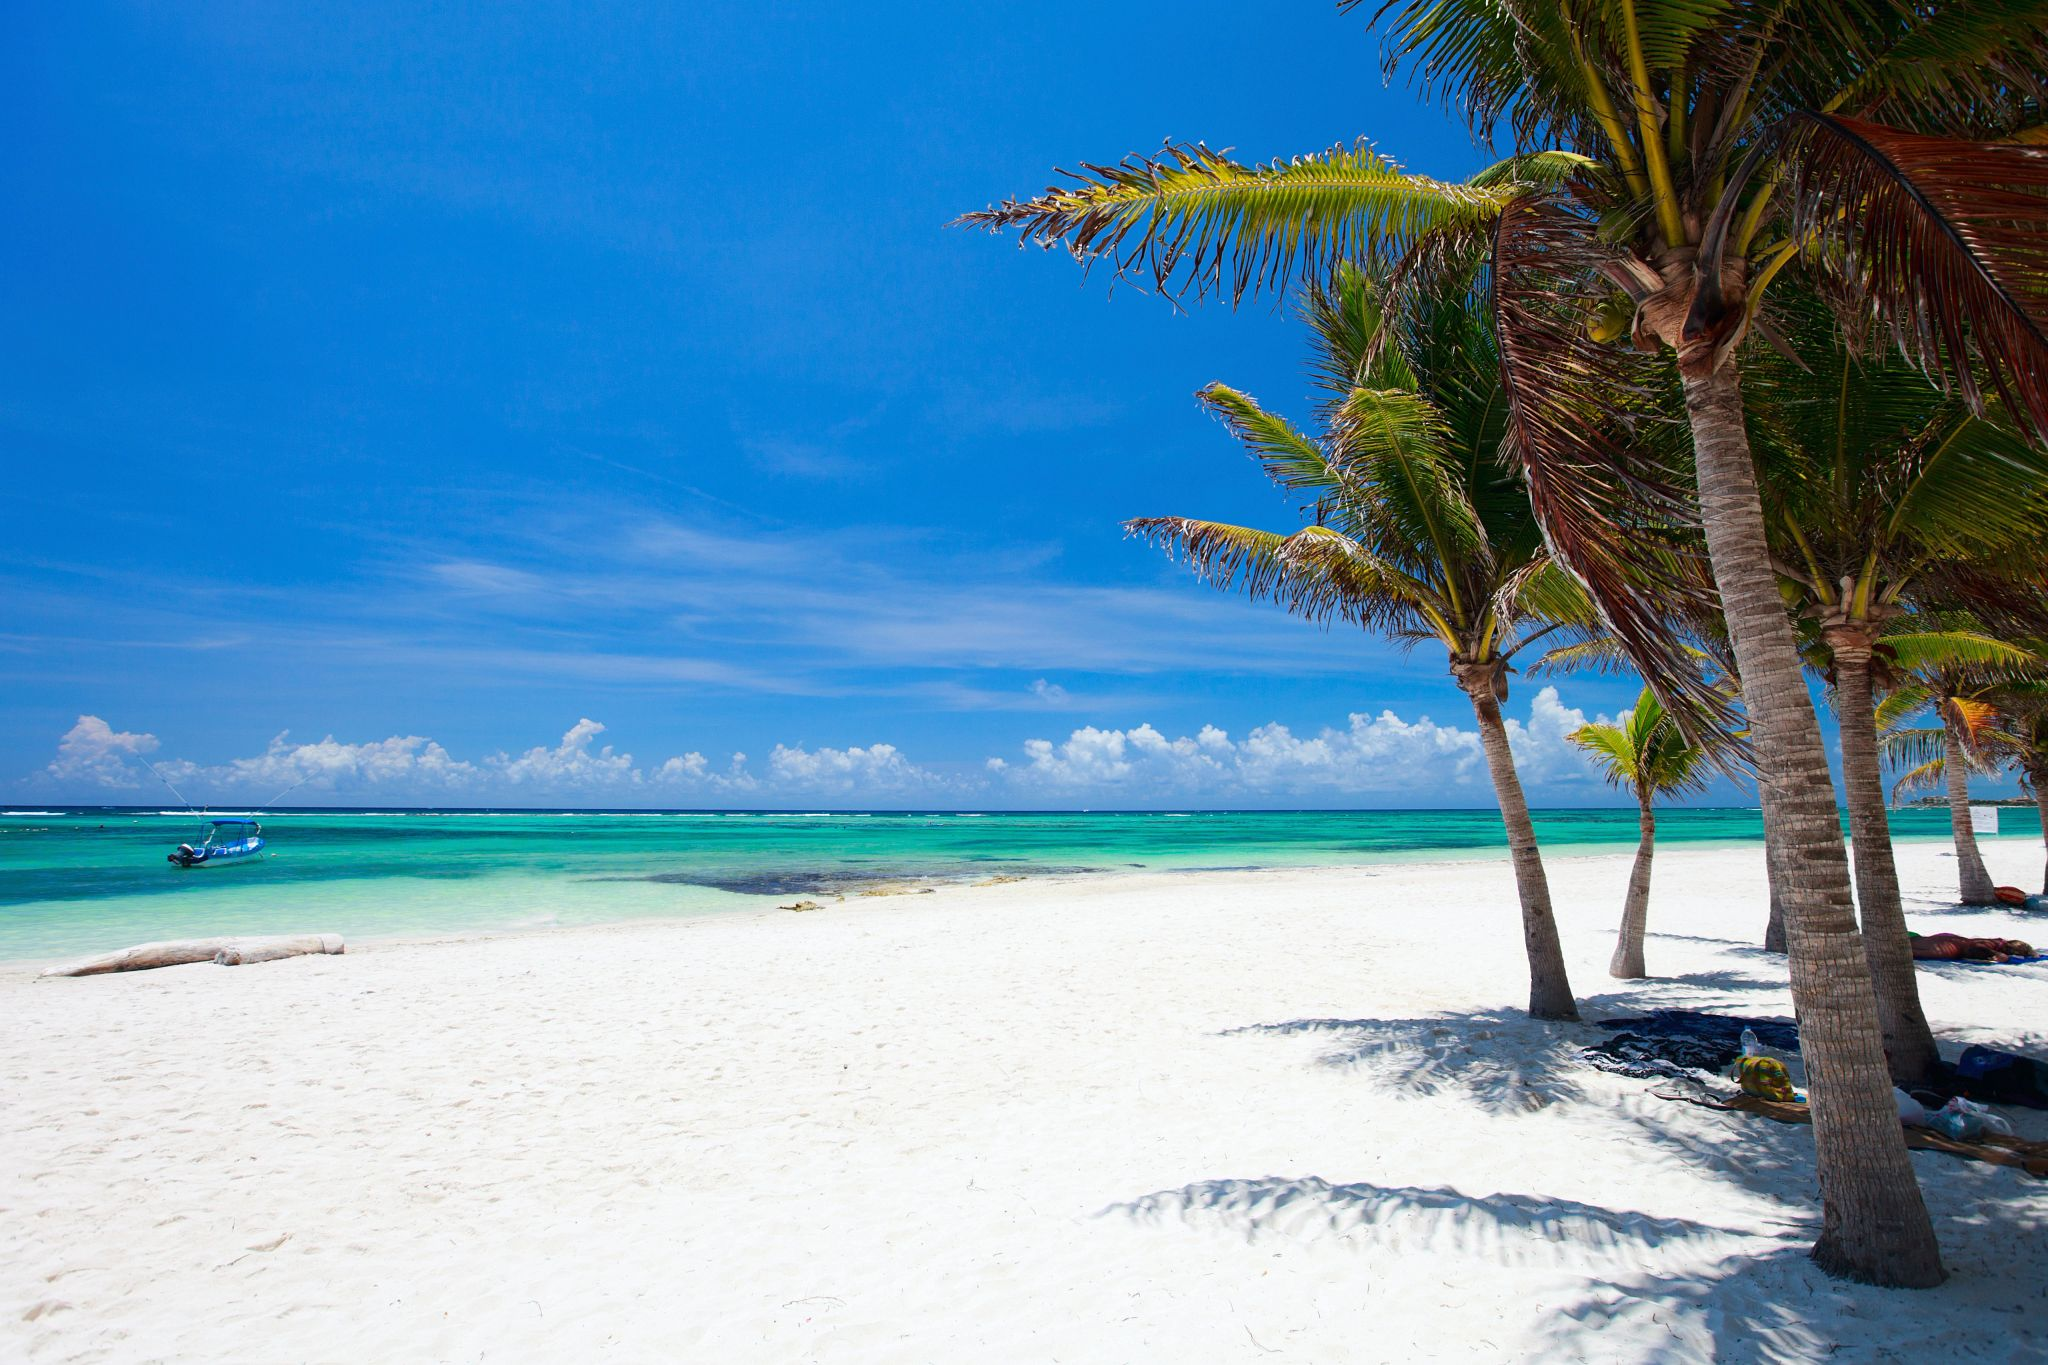 white sandy beach with palm tree and a clear blue sea